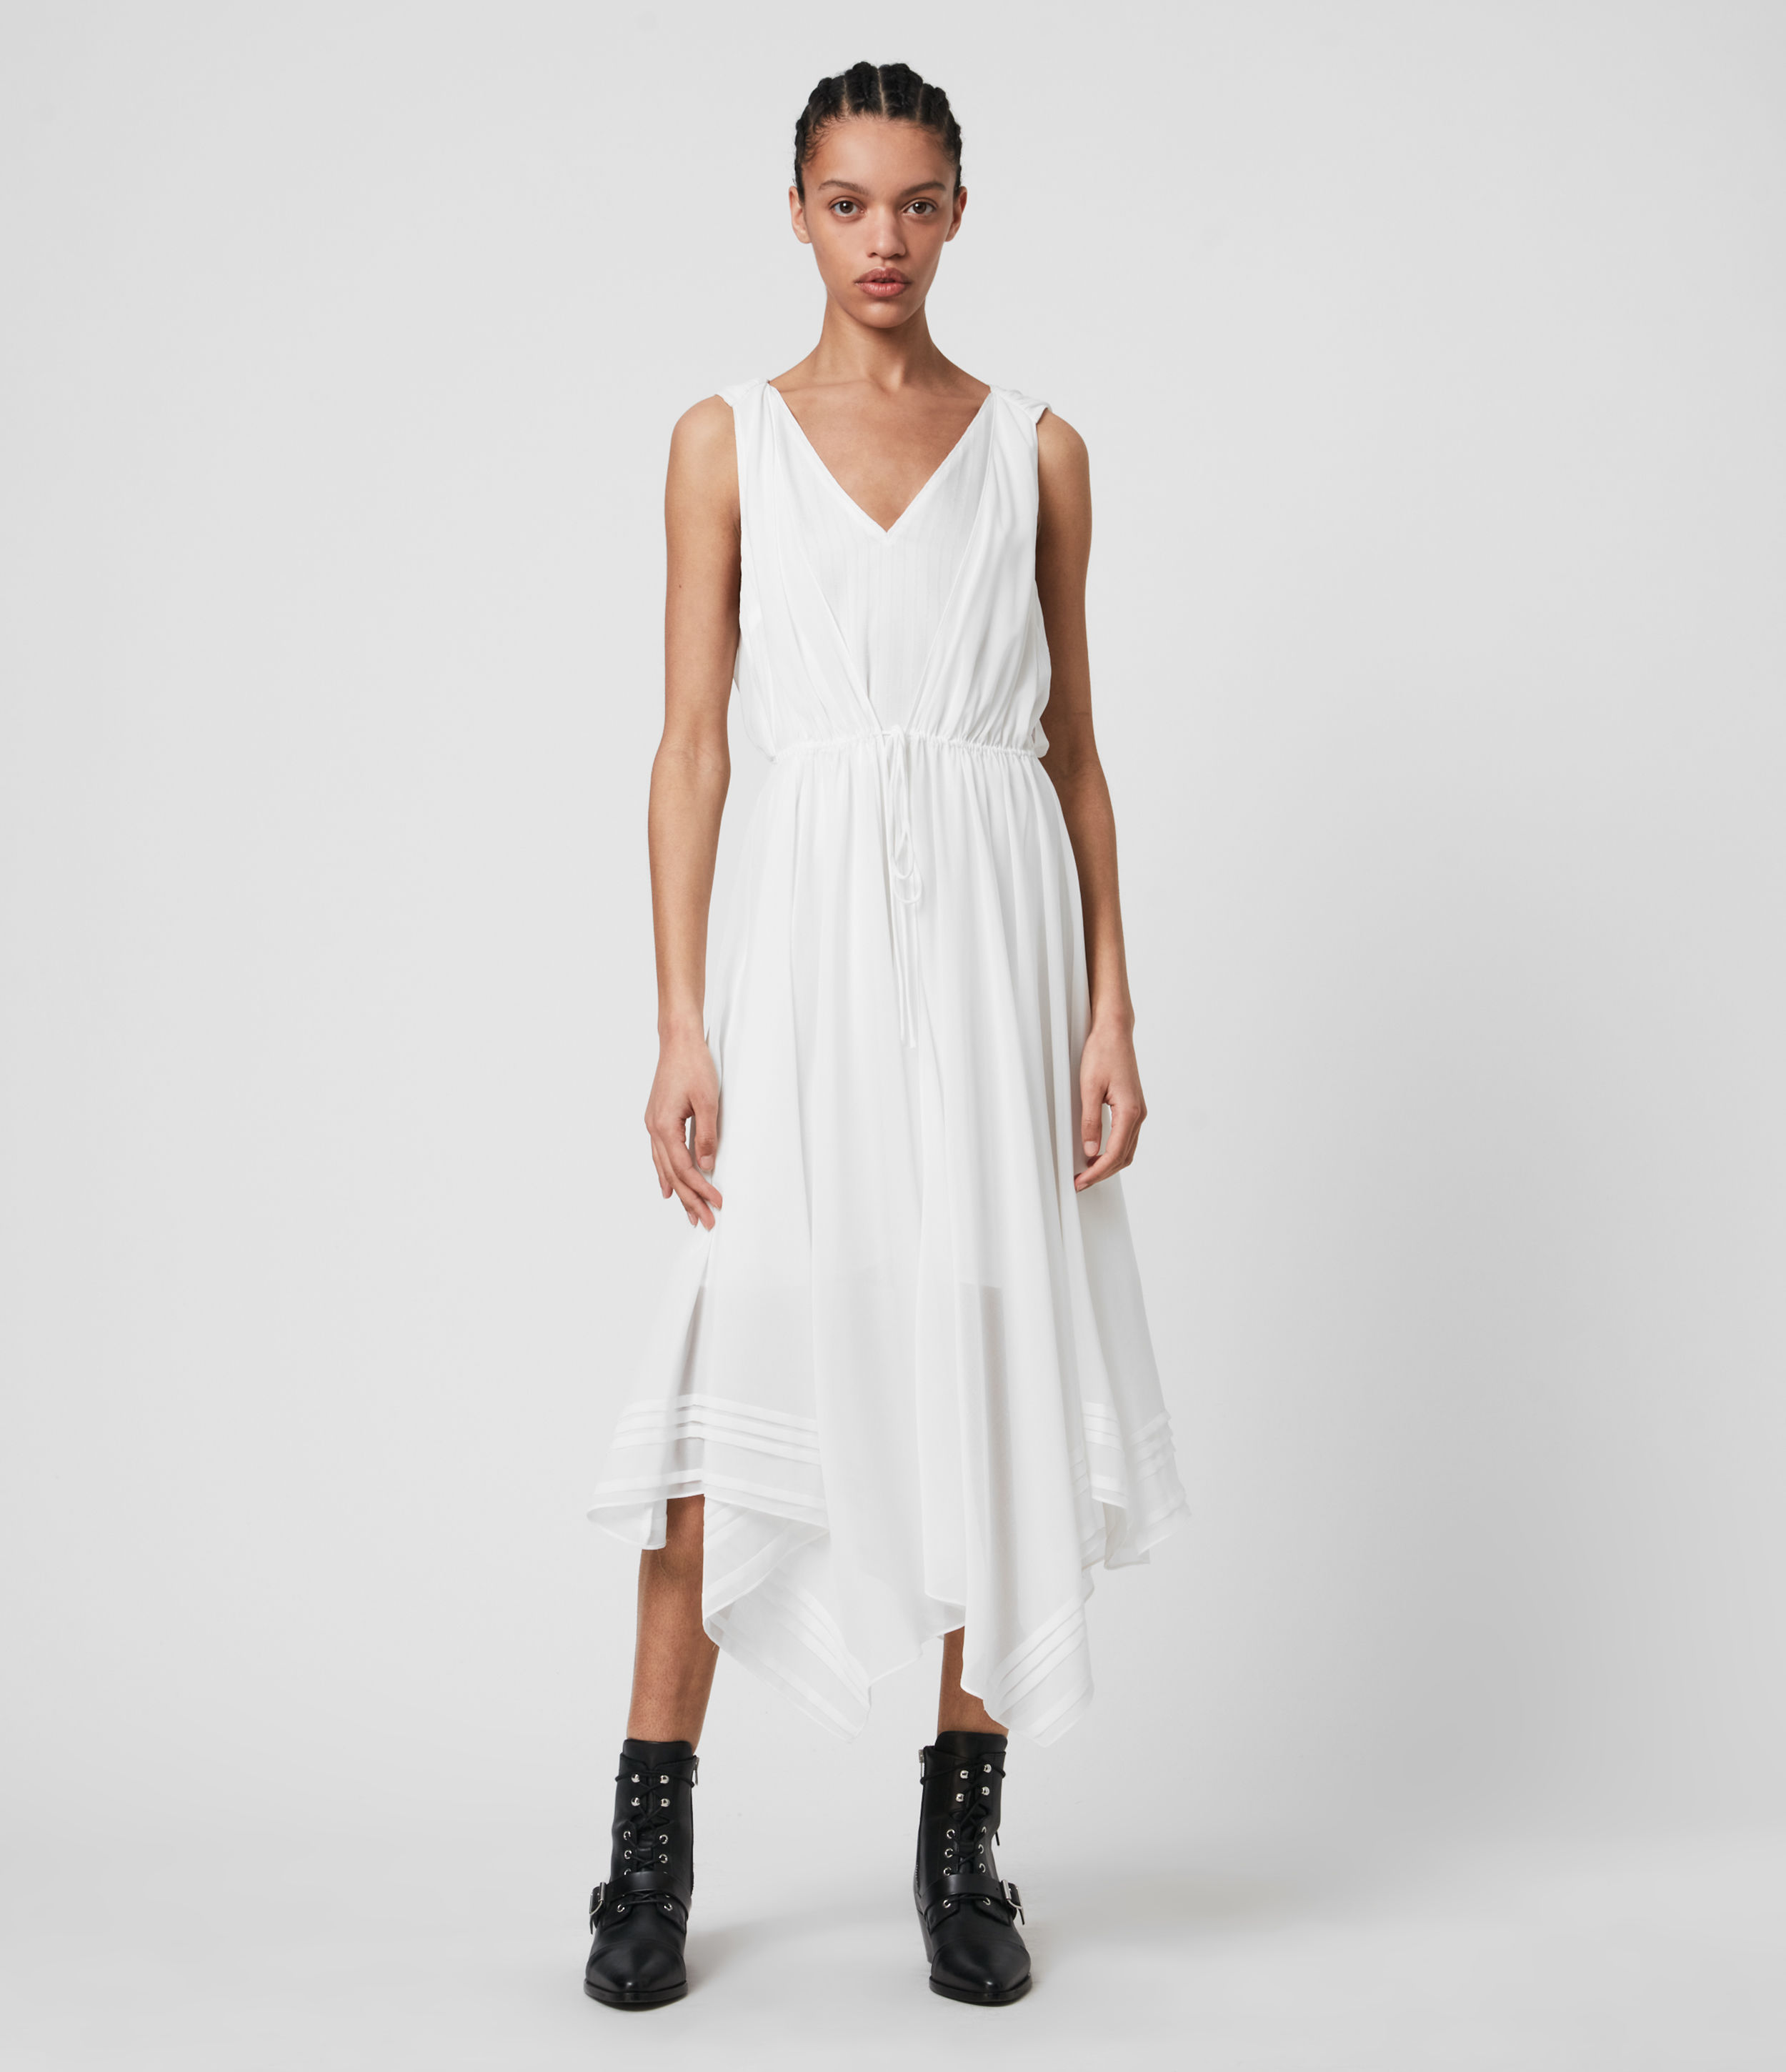 AllSaints Celeste Dress